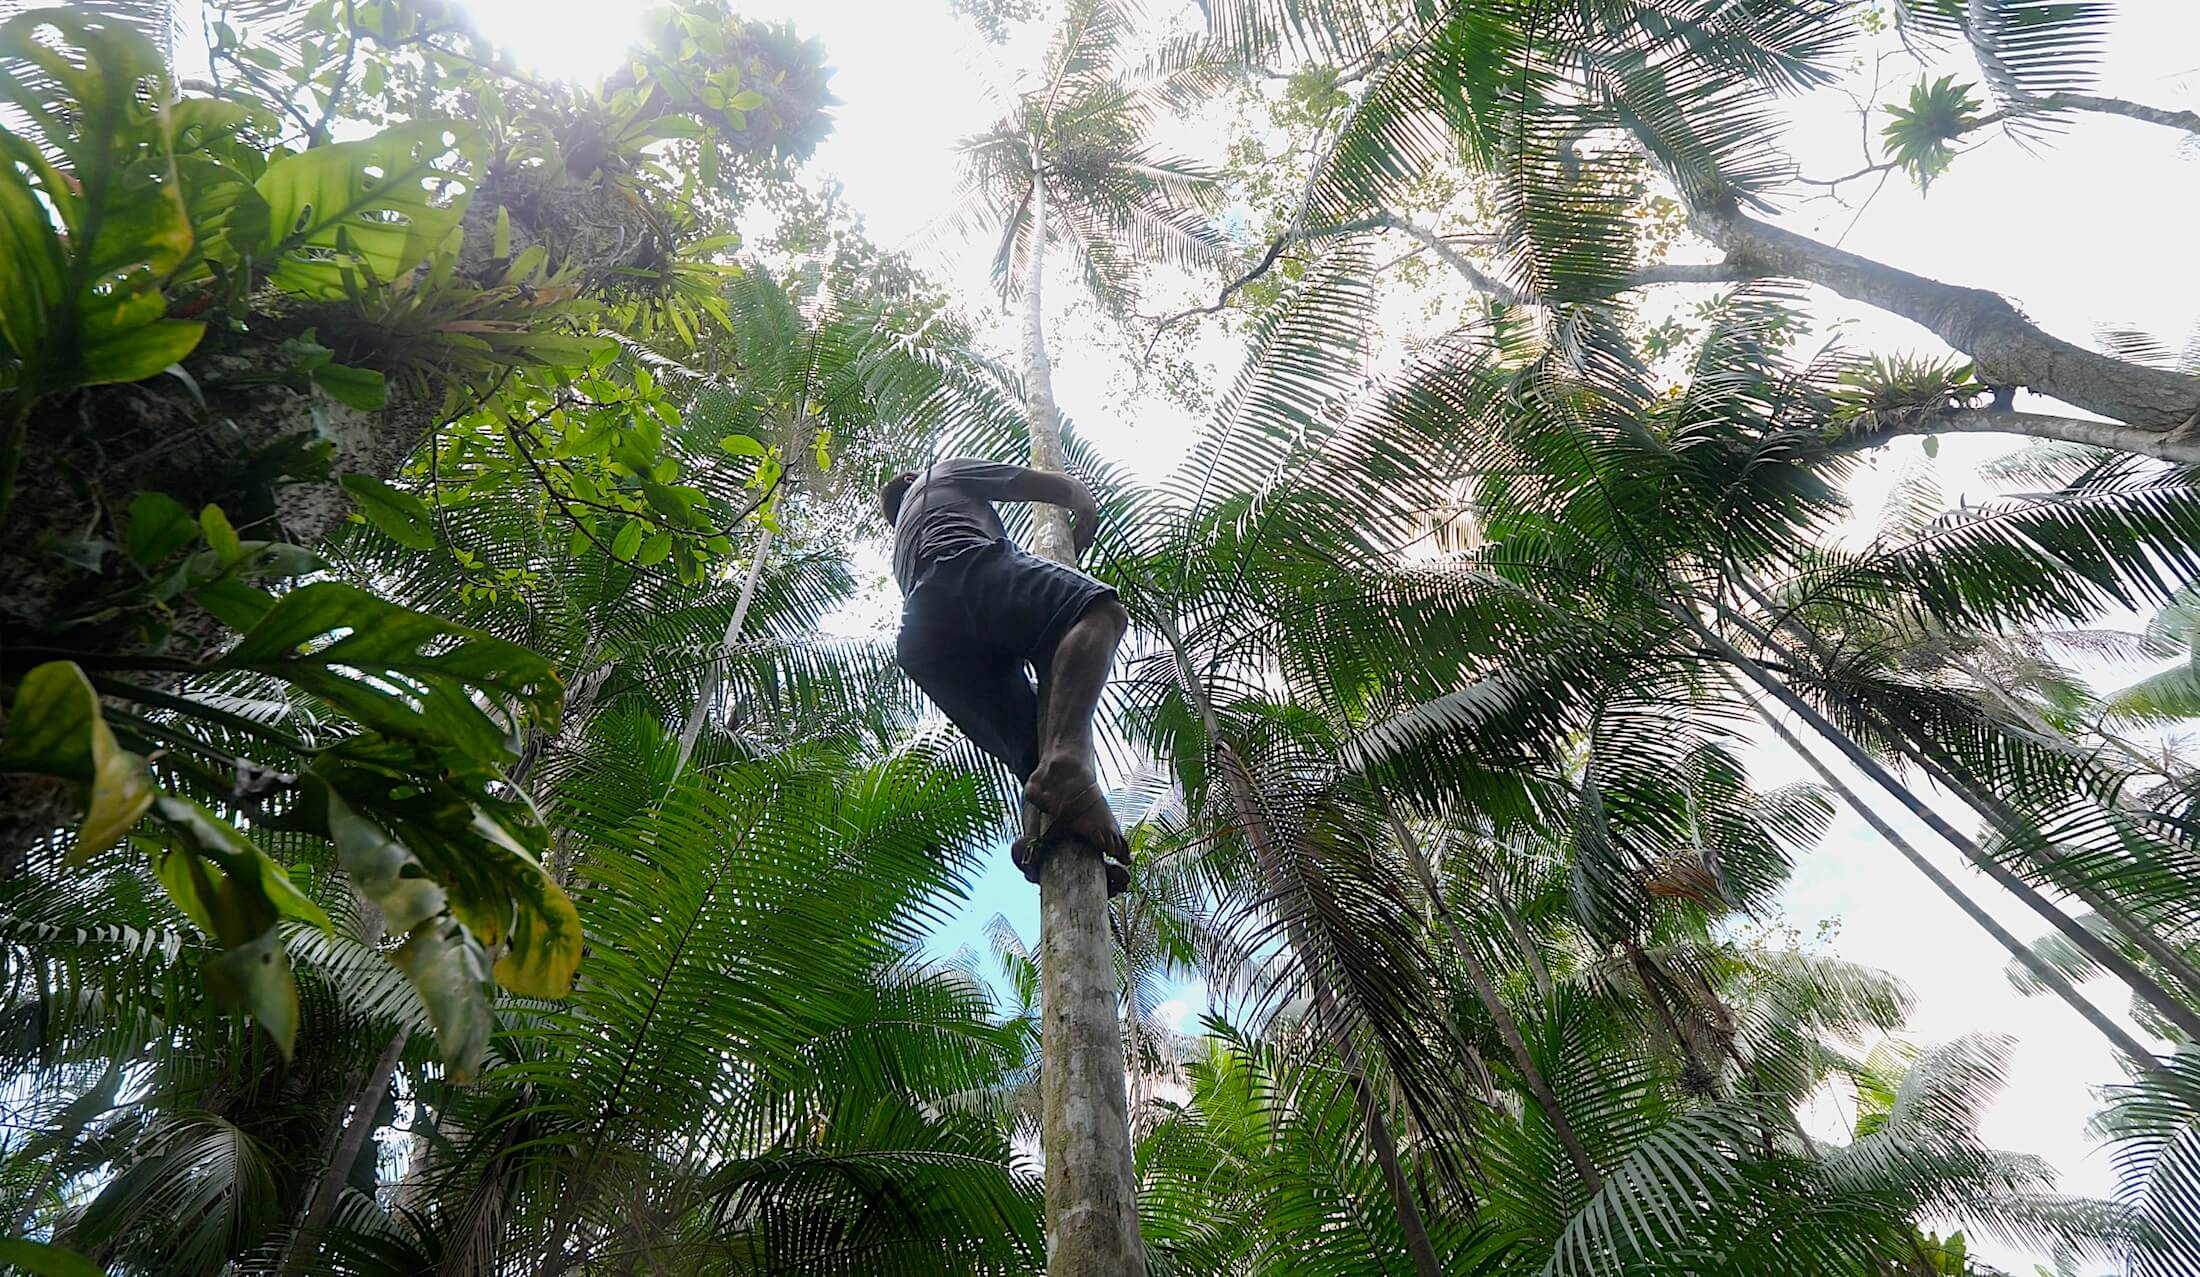 Climbing the thin acai palms takes experience, and Flavio has a lifetime of it!